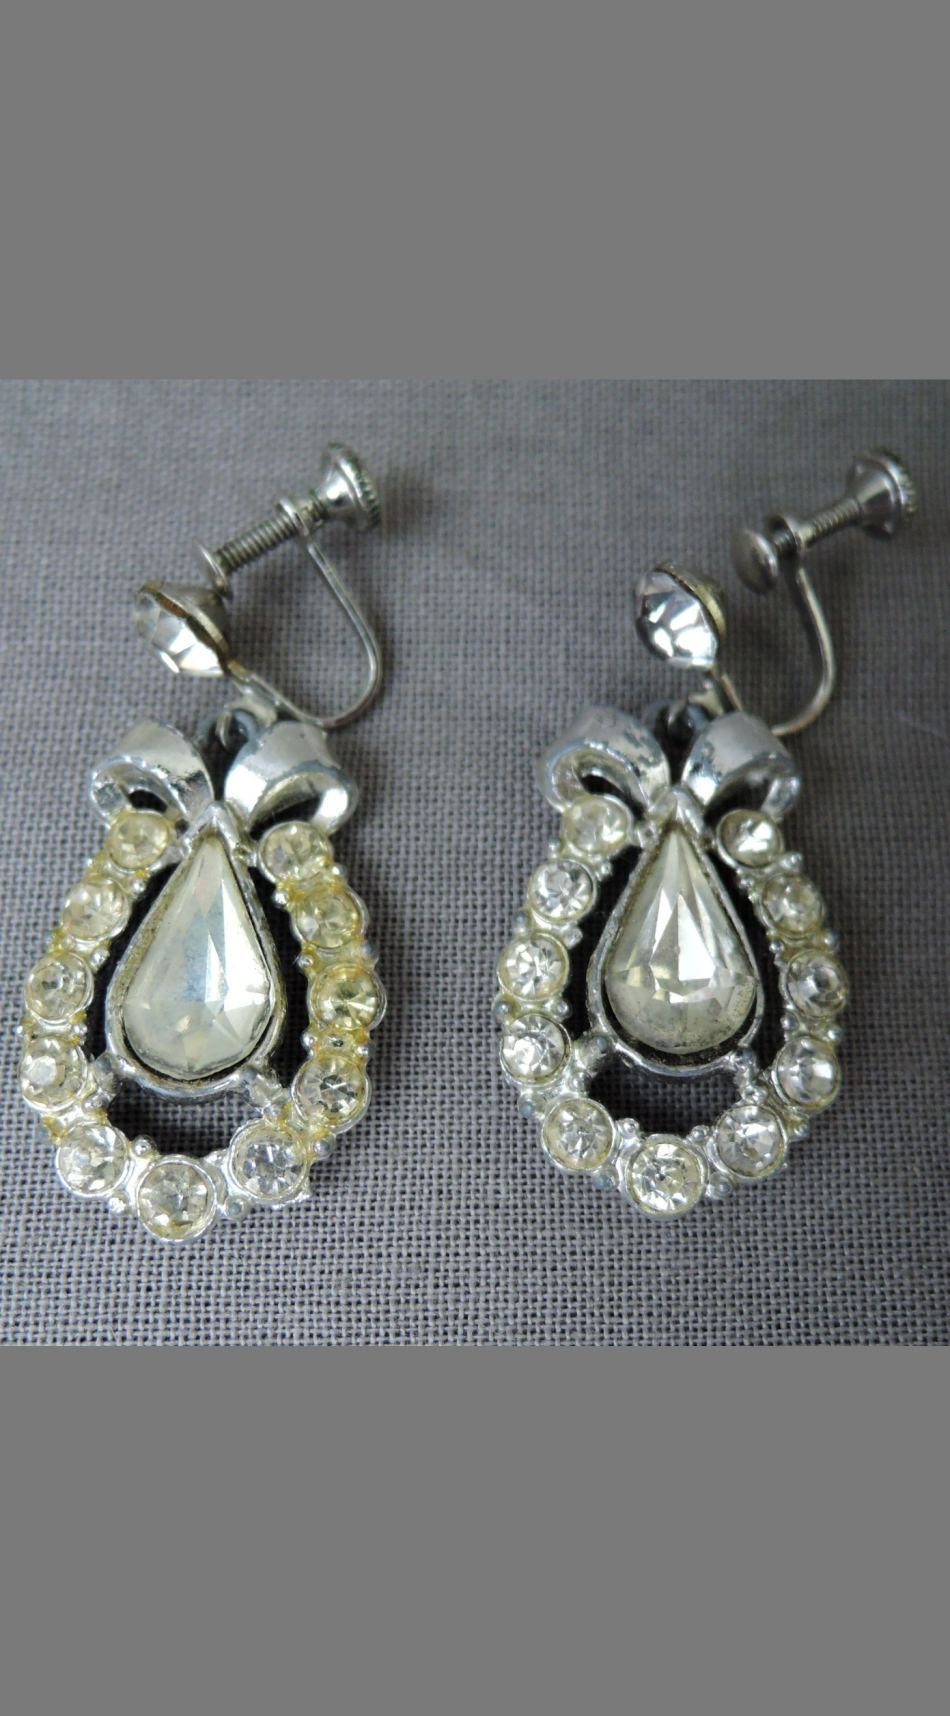 Vintage Dangling Rhinestone Earrings, 1950s Screw back, Costume Jewelry, with issues